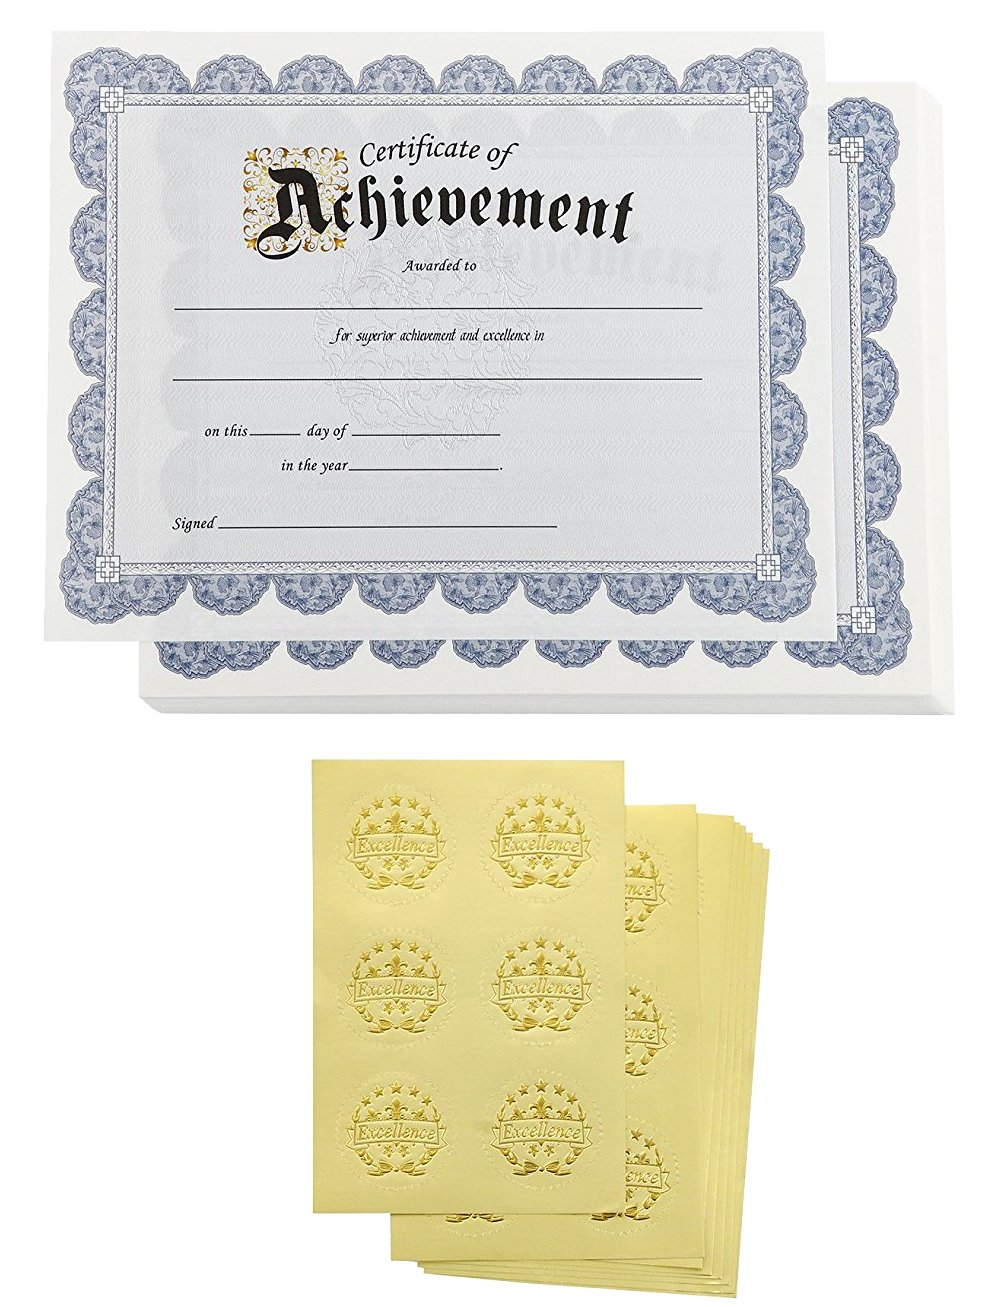 Certificate Papers – 48 Certificate of Achievement Award Certificates with 48 Excellence Gold Foil Seal Stickers, for Student, Teacher, Professor, Blue, 8.5 x 11 inches